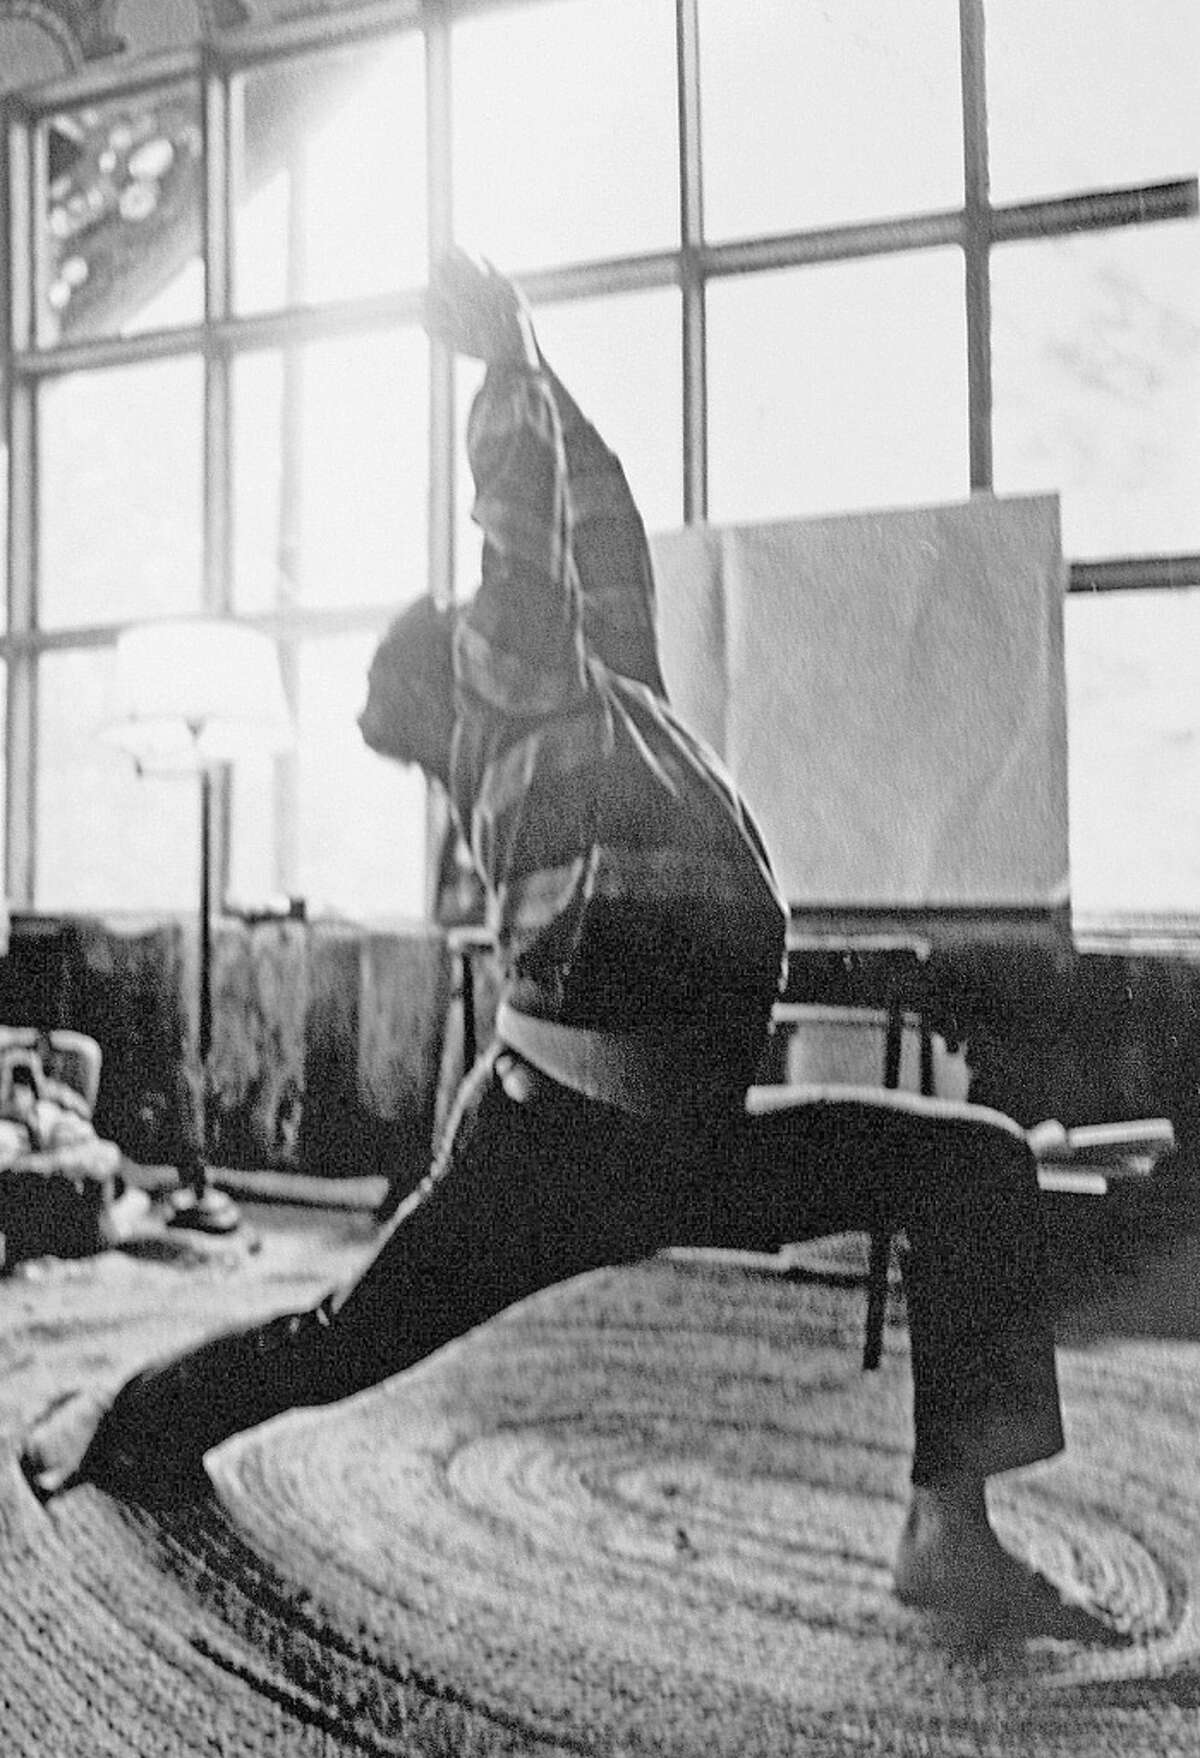 Labor activist Cesar Chavez relaxes by doing yoga routines at the United Farm Workers headquarters in La Paz in the 1970s.